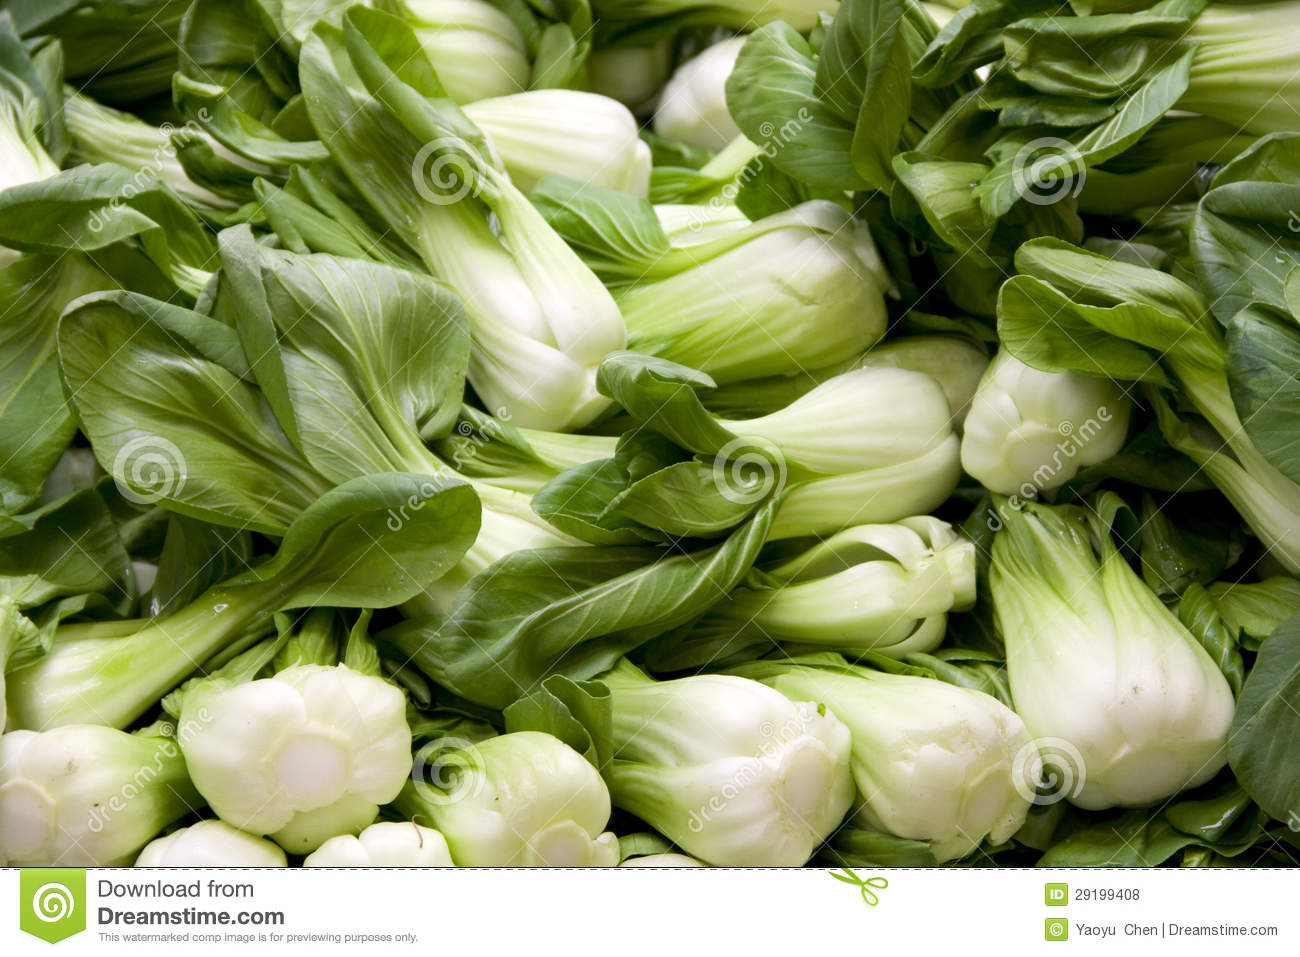 Chinese Vegetable Royalty Free Stock Photos - Image: 29199408